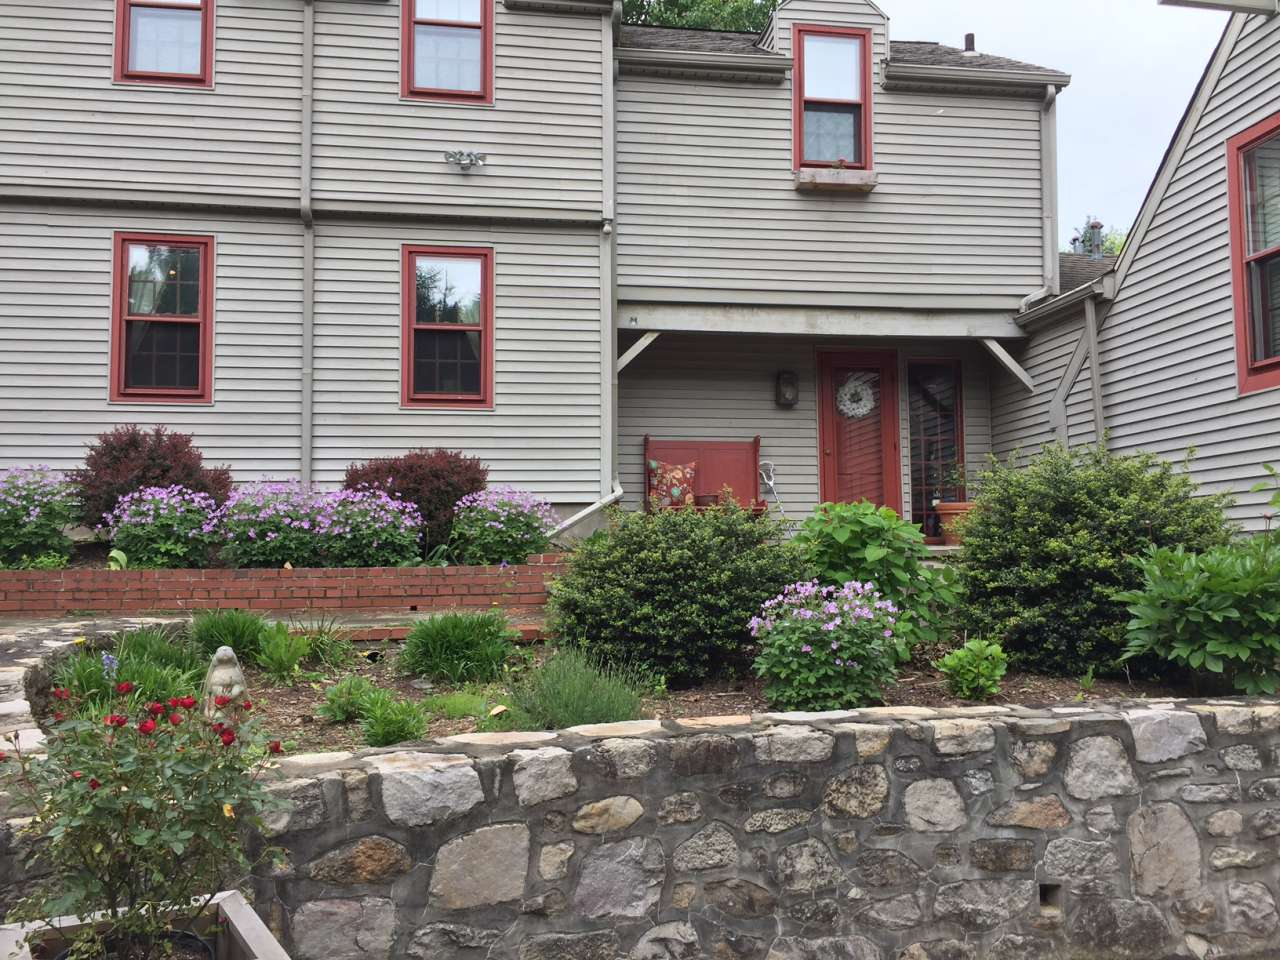 Curb appeal hop - the plan